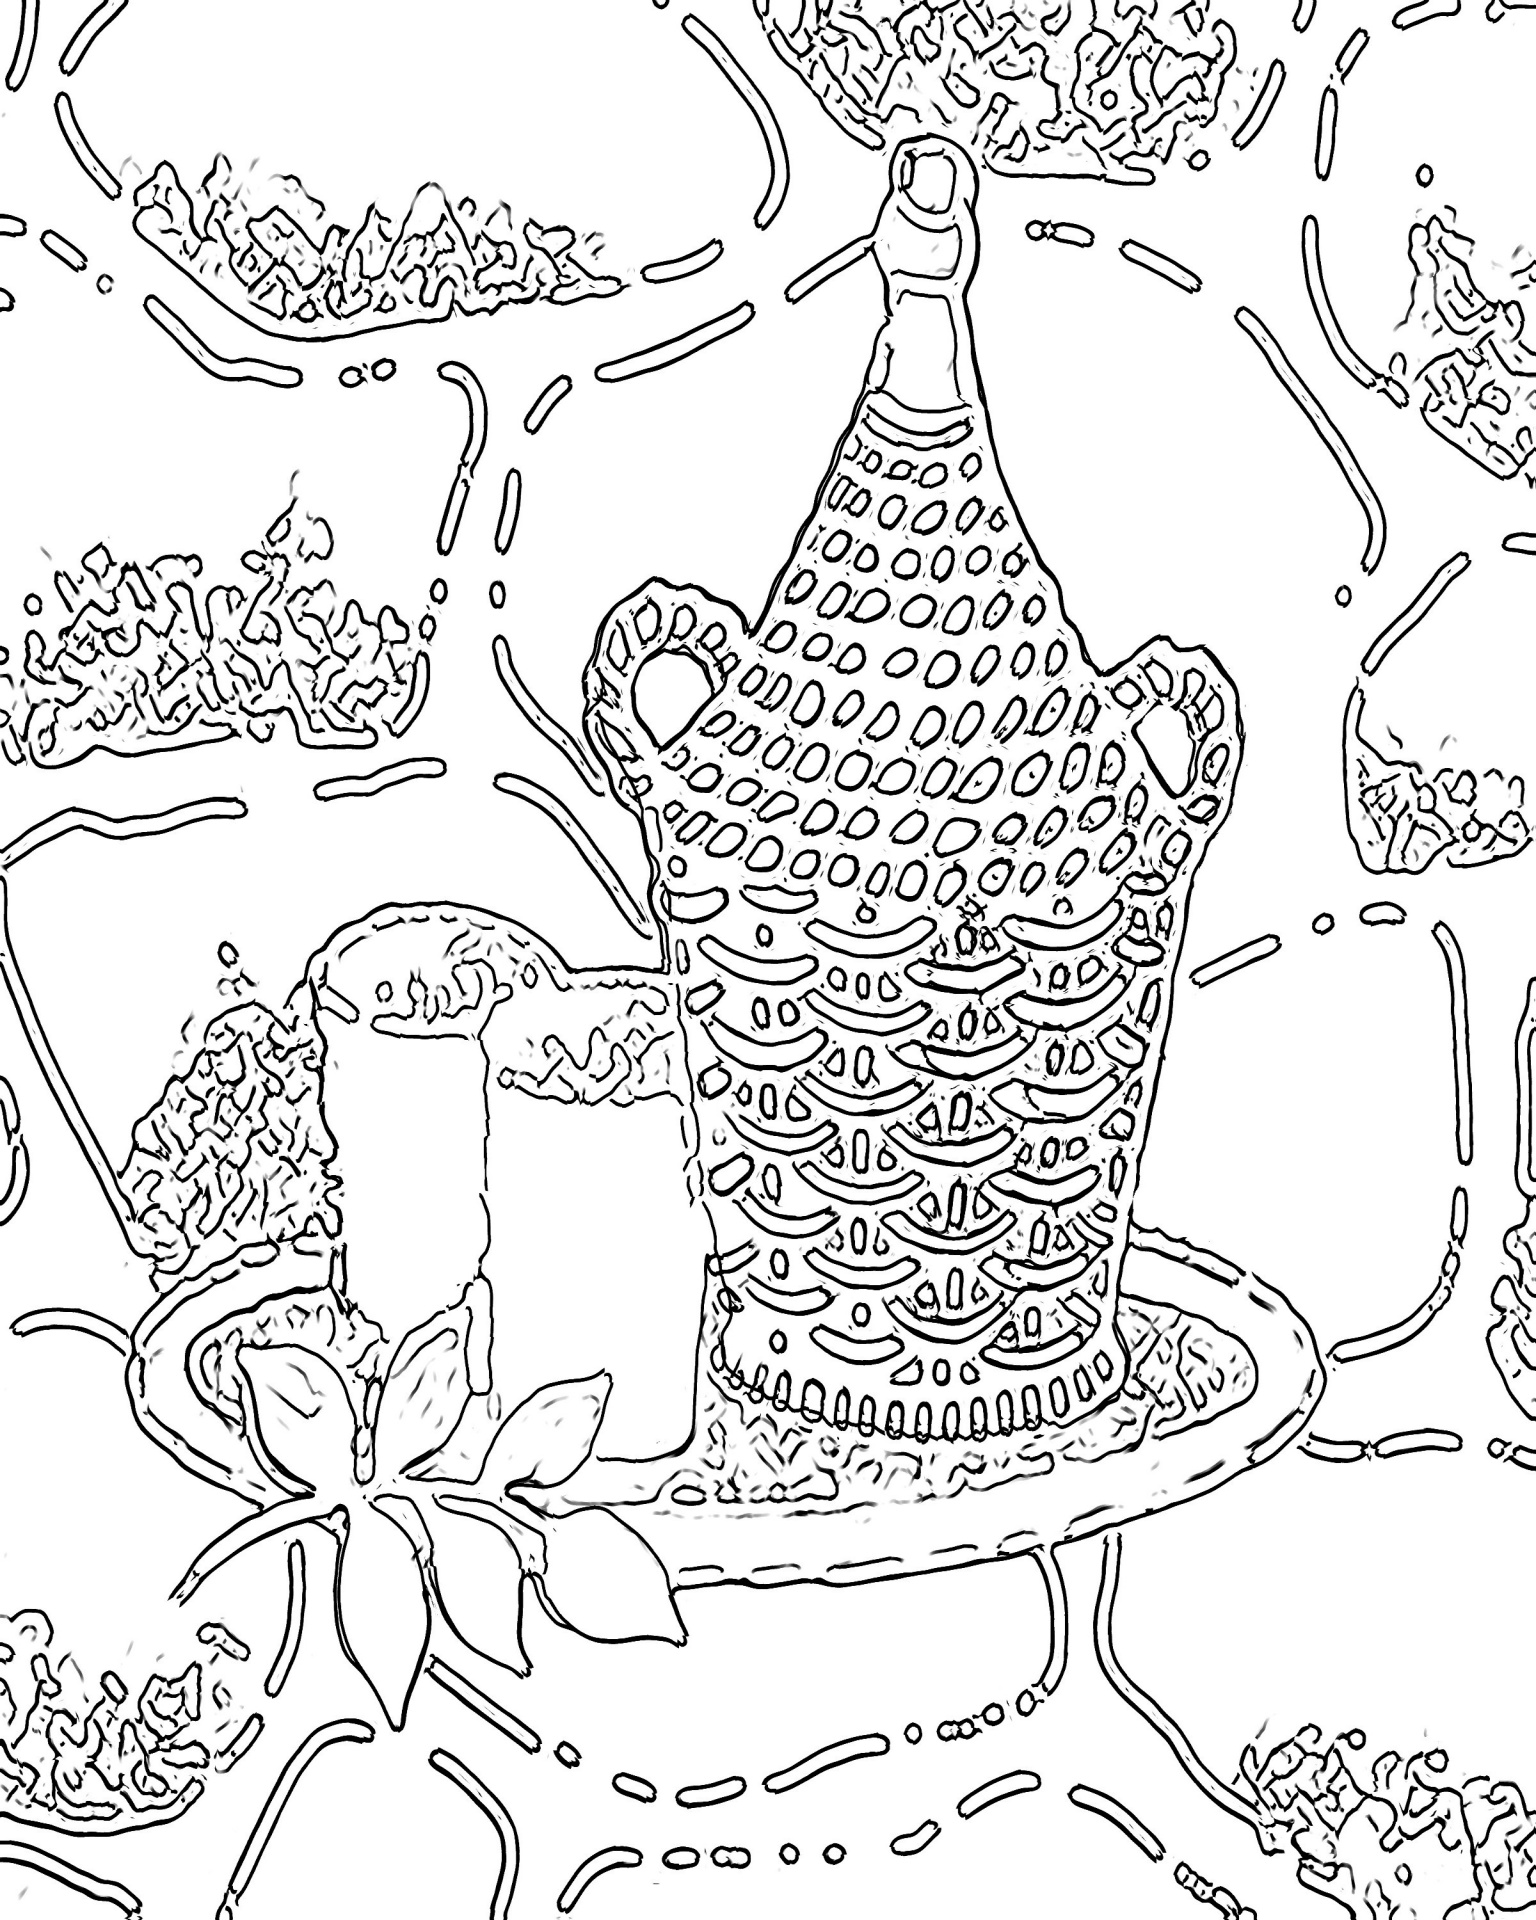 free coloring pages for adults printable floral coloring pages for adults best coloring pages for pages adults coloring printable free for